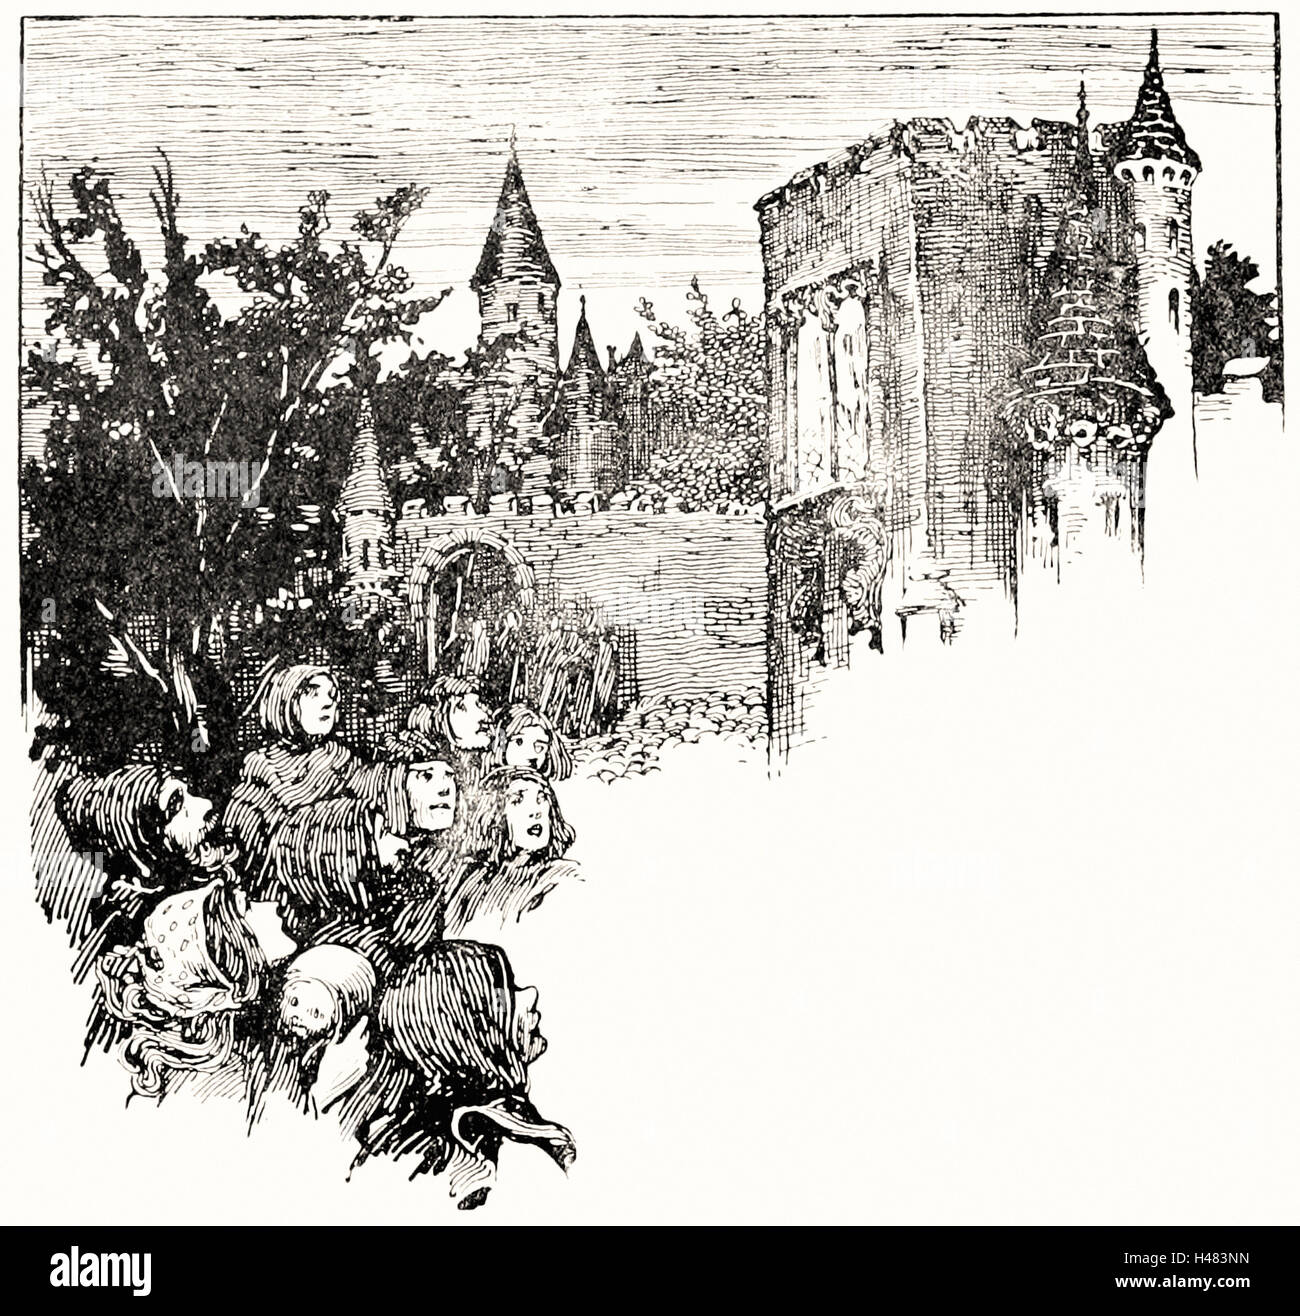 Helen Stratton - Page 44 illustration in fairy tales of Andersen - Stock Image